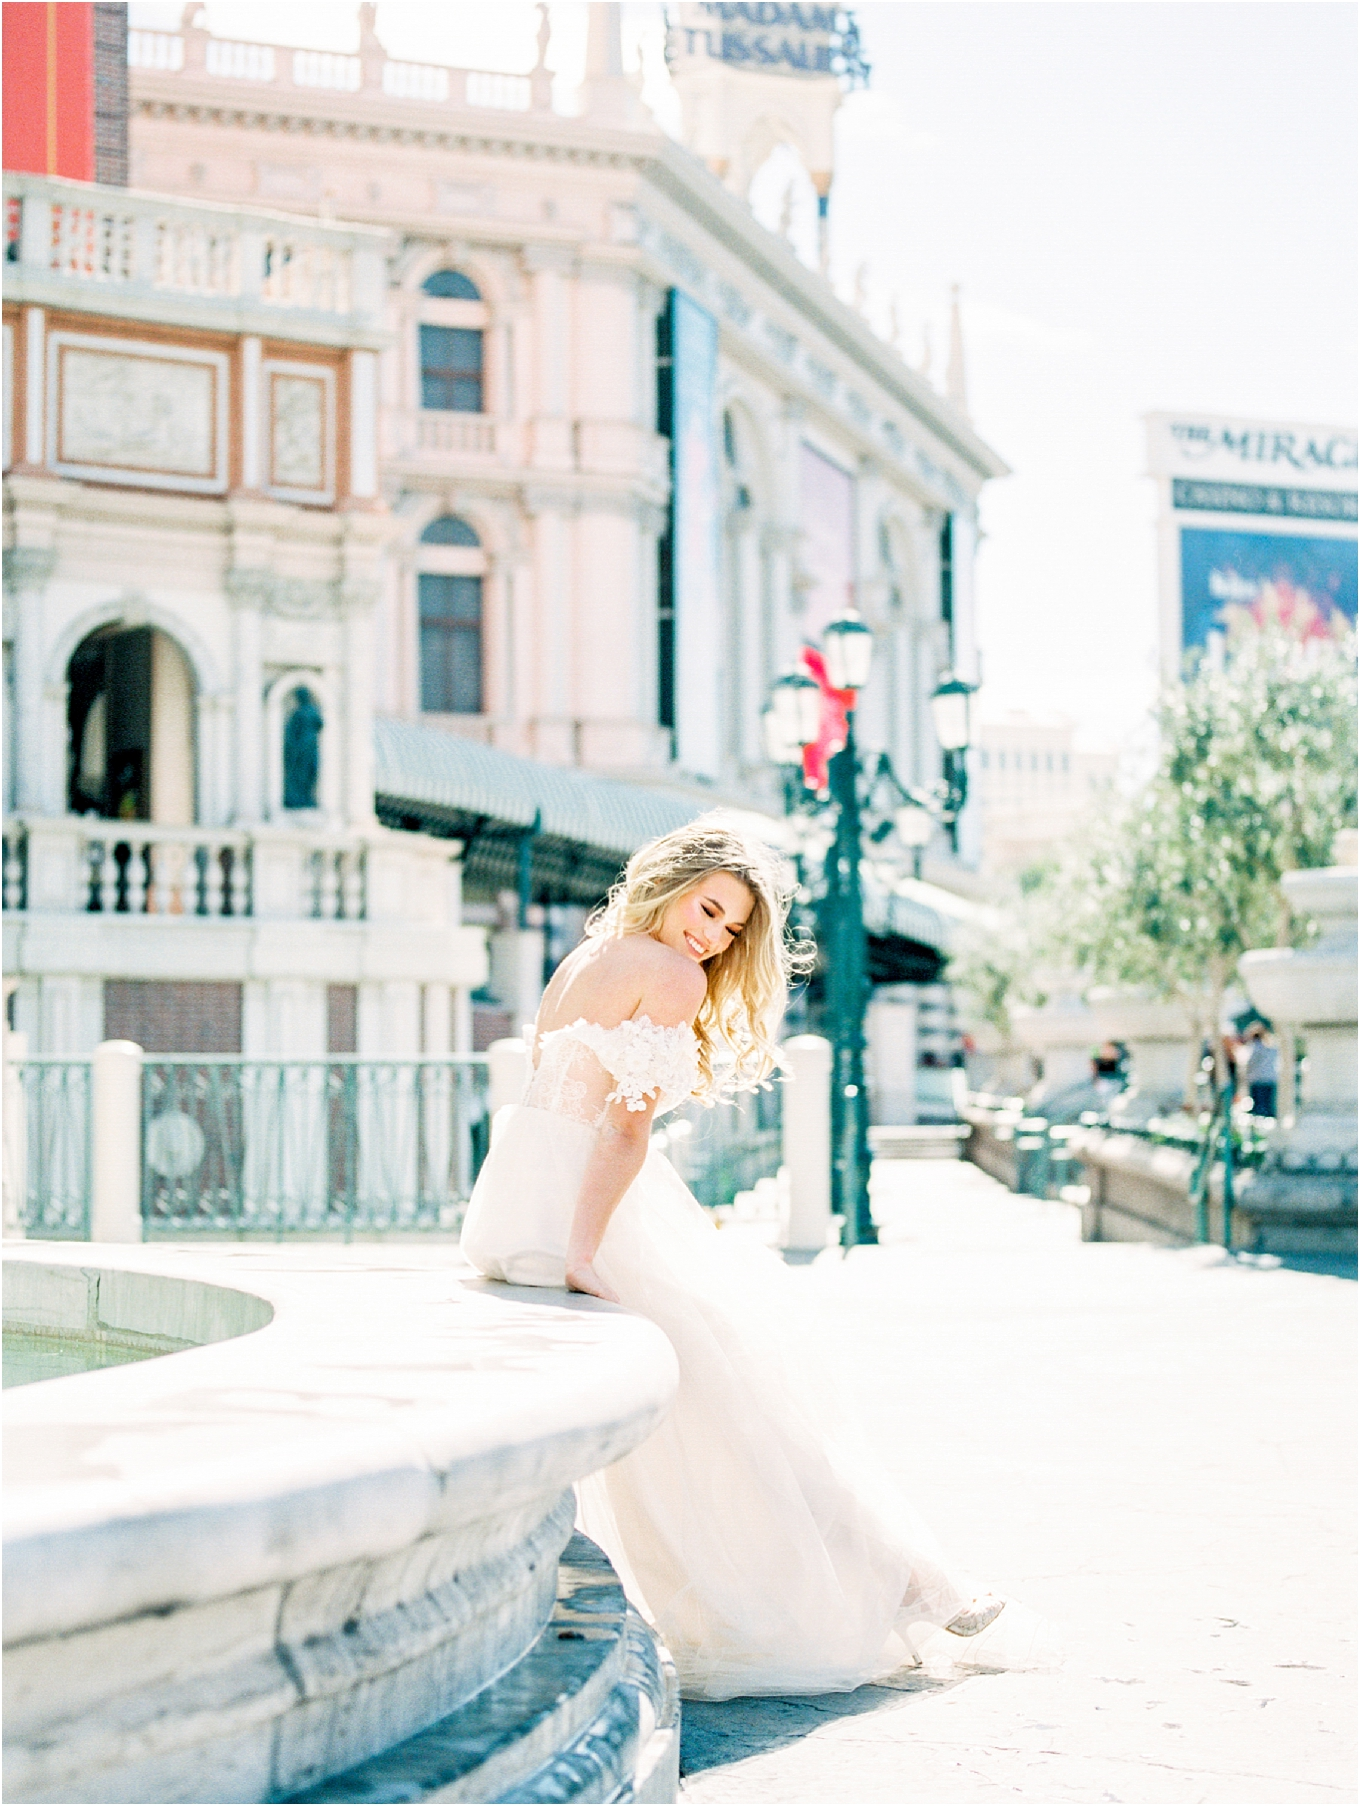 Lisa Silva Photography- Ponte Vedra Beach, St. Augustine and Jacksonville, Florida Fine Art Film Wedding and Boudoir Photography- Fine Art Film Bridal Editorial at the Venitian, Las Vegas 0.jpg